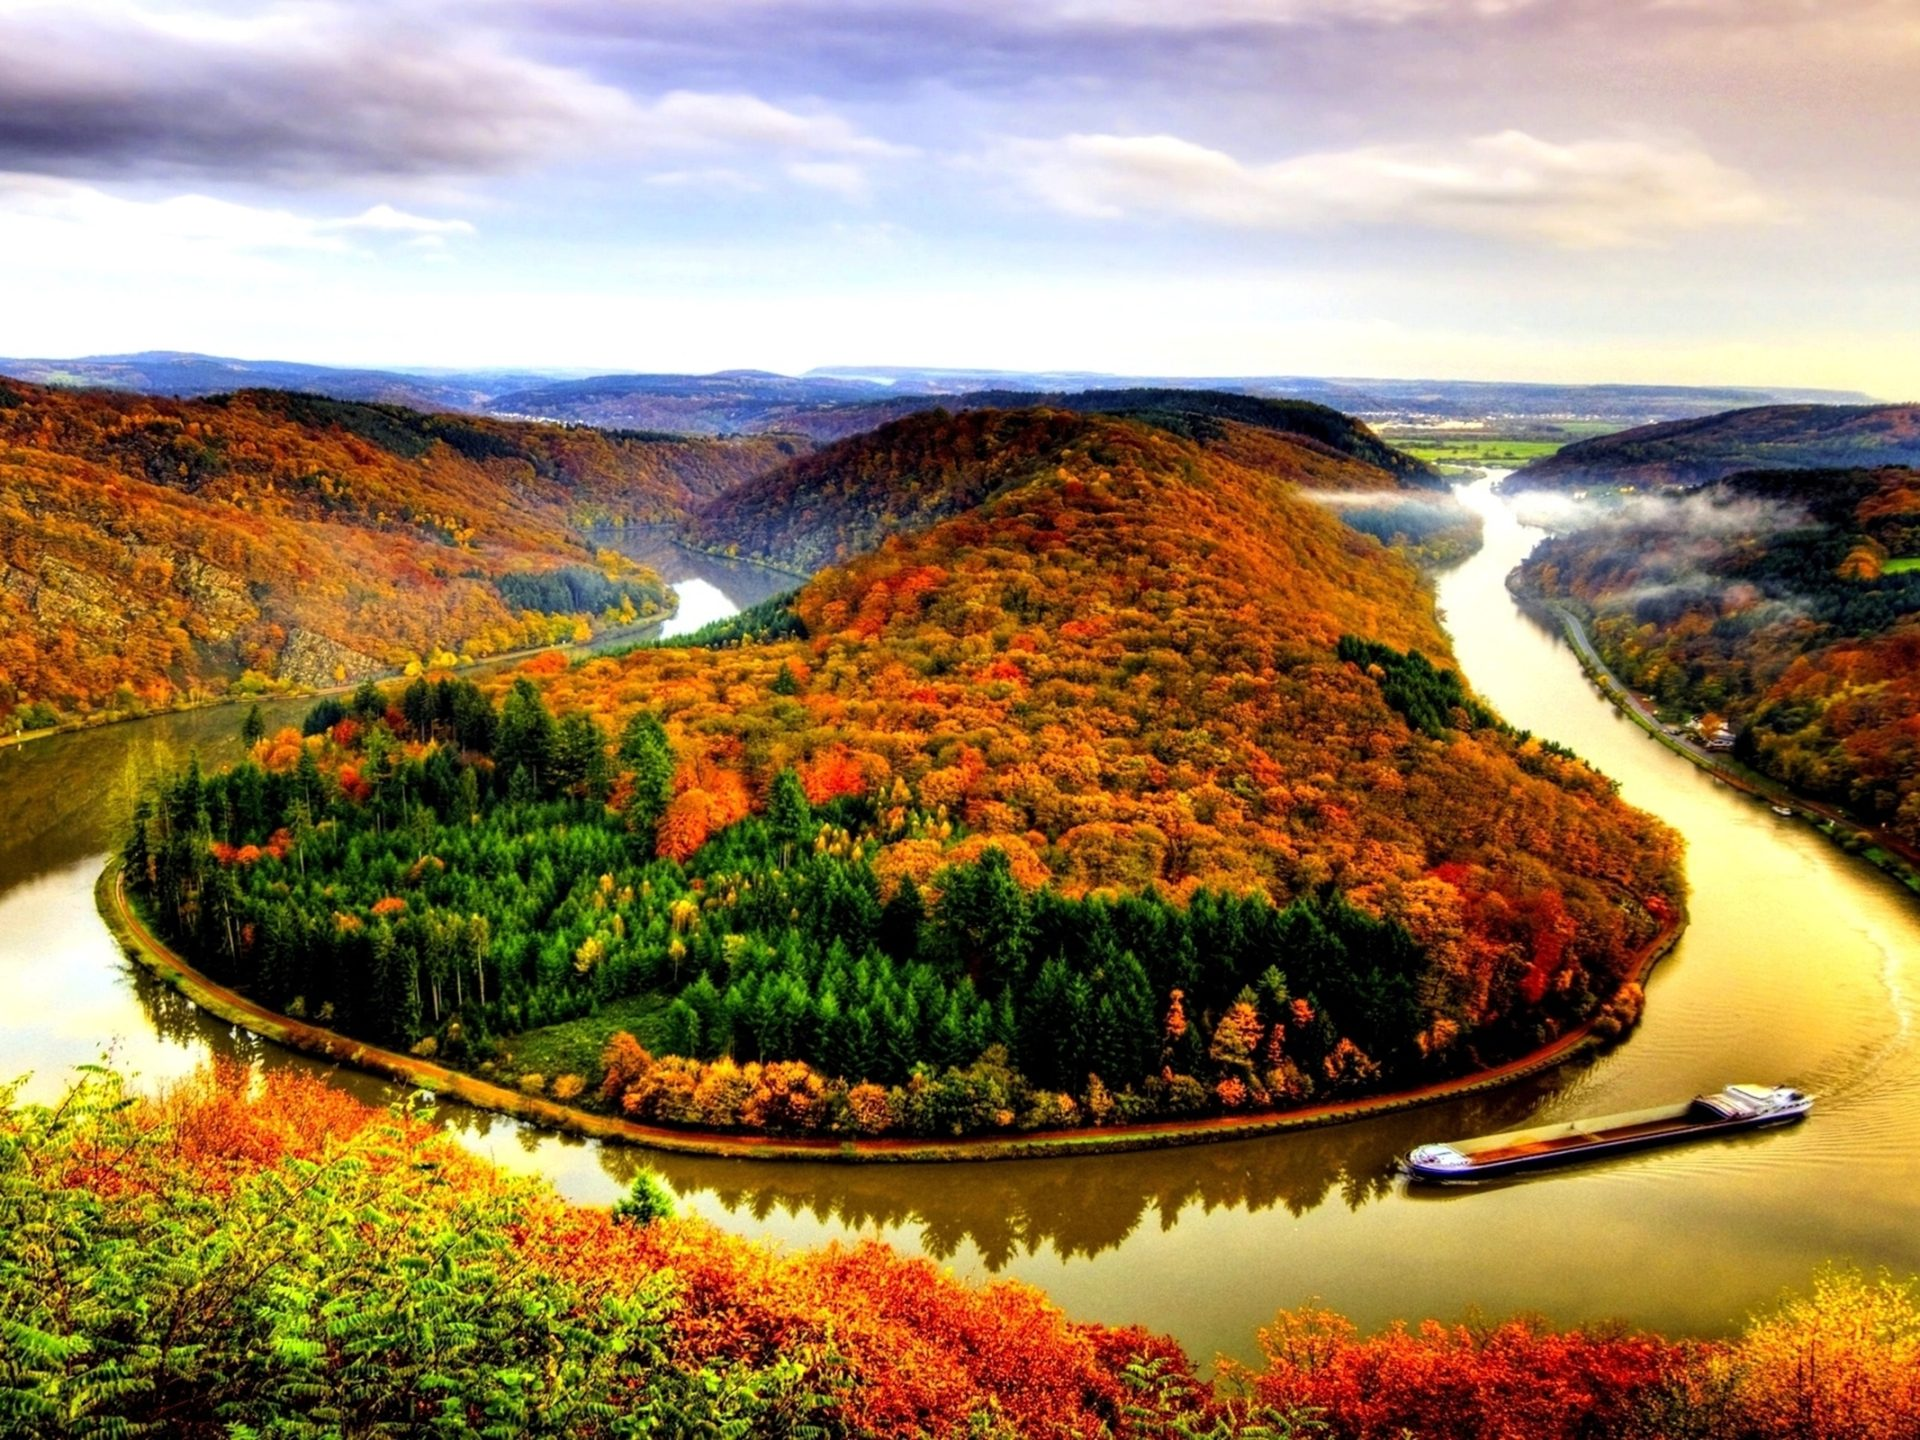 Free Hd Fall Wallpaper Autumn River Wallpaper Wallpapers13 Com